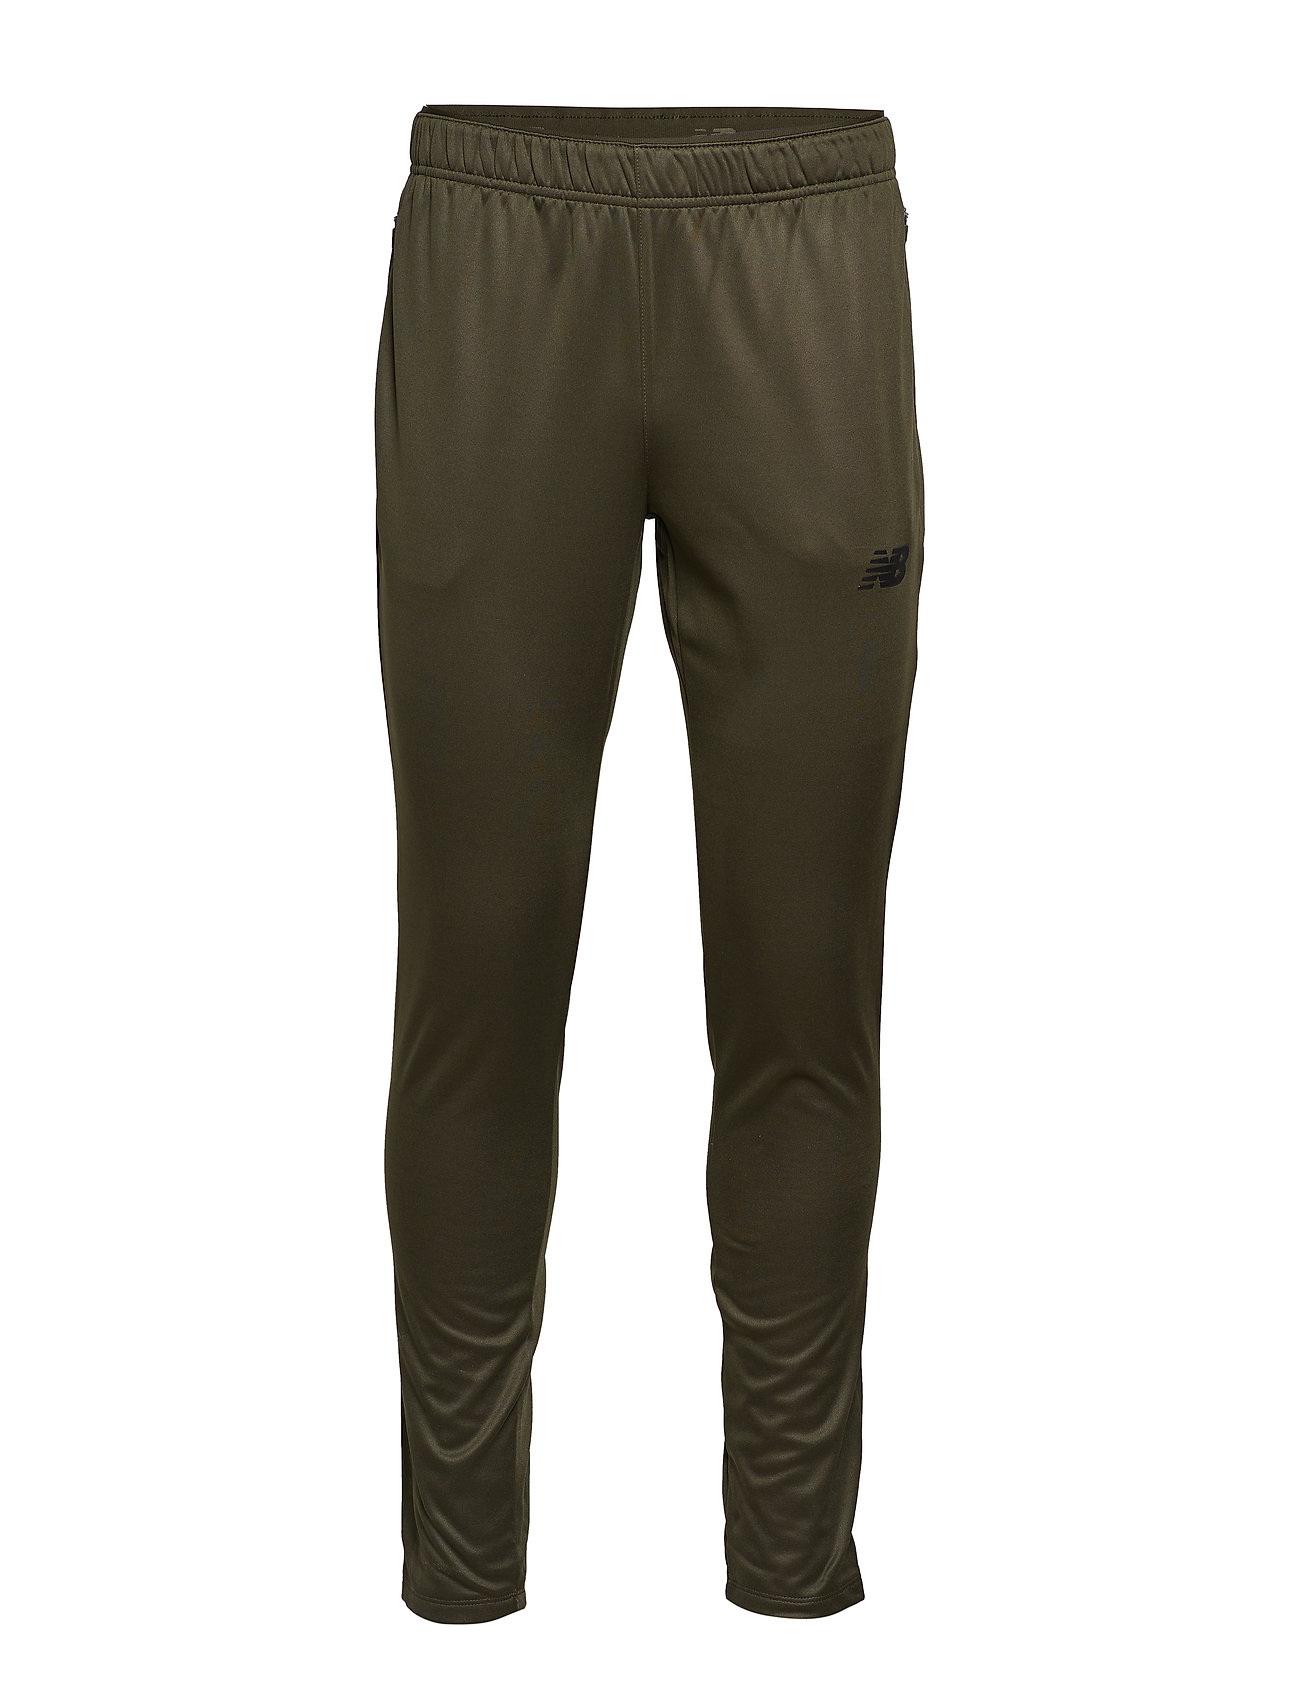 New Balance NBST KNIT SLIM PANT - FOREST NIGHT